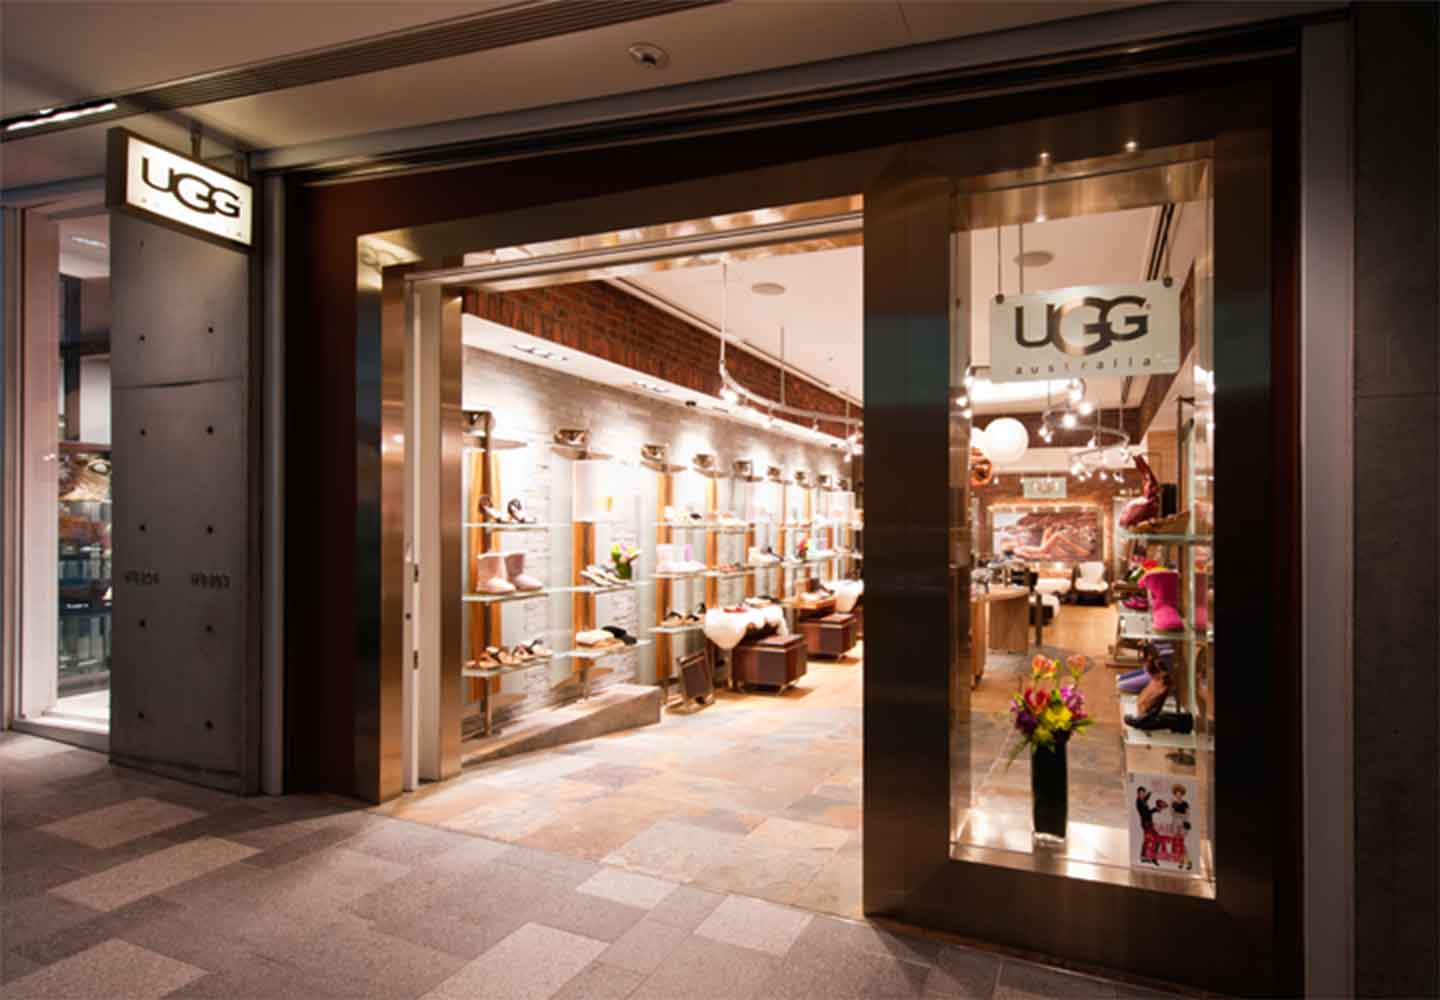 storefront of Ugg retail store in Japan